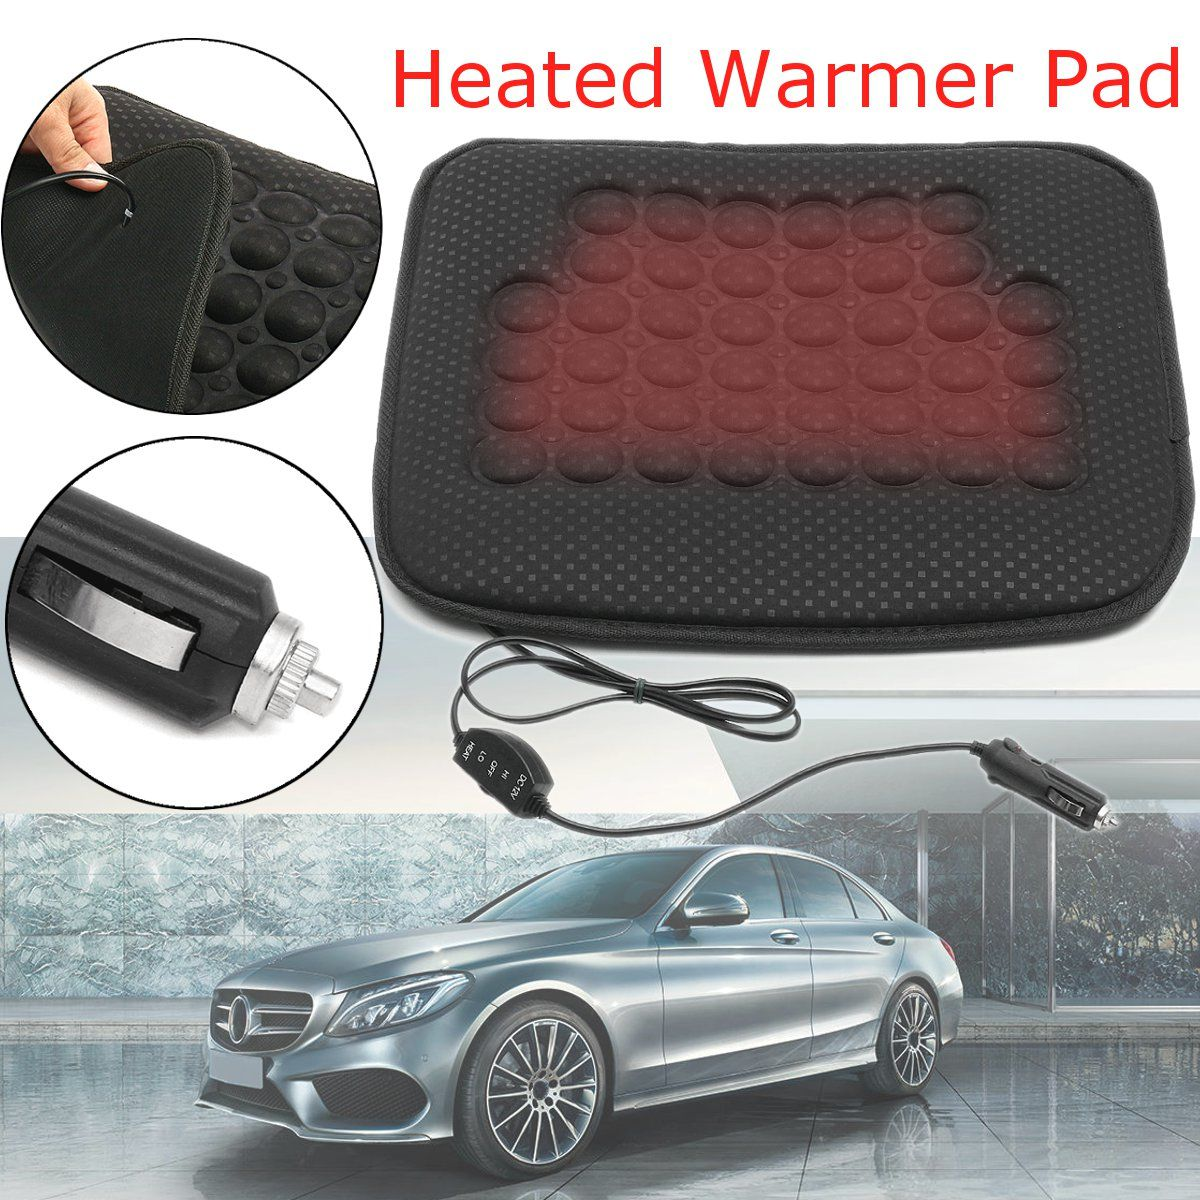 Icarekit Car Seat Warmer Seat Cushion for Cold Days Auto Heated Seat Cushion Cover Auto 12V Heating Heater Warmer Pad Winter